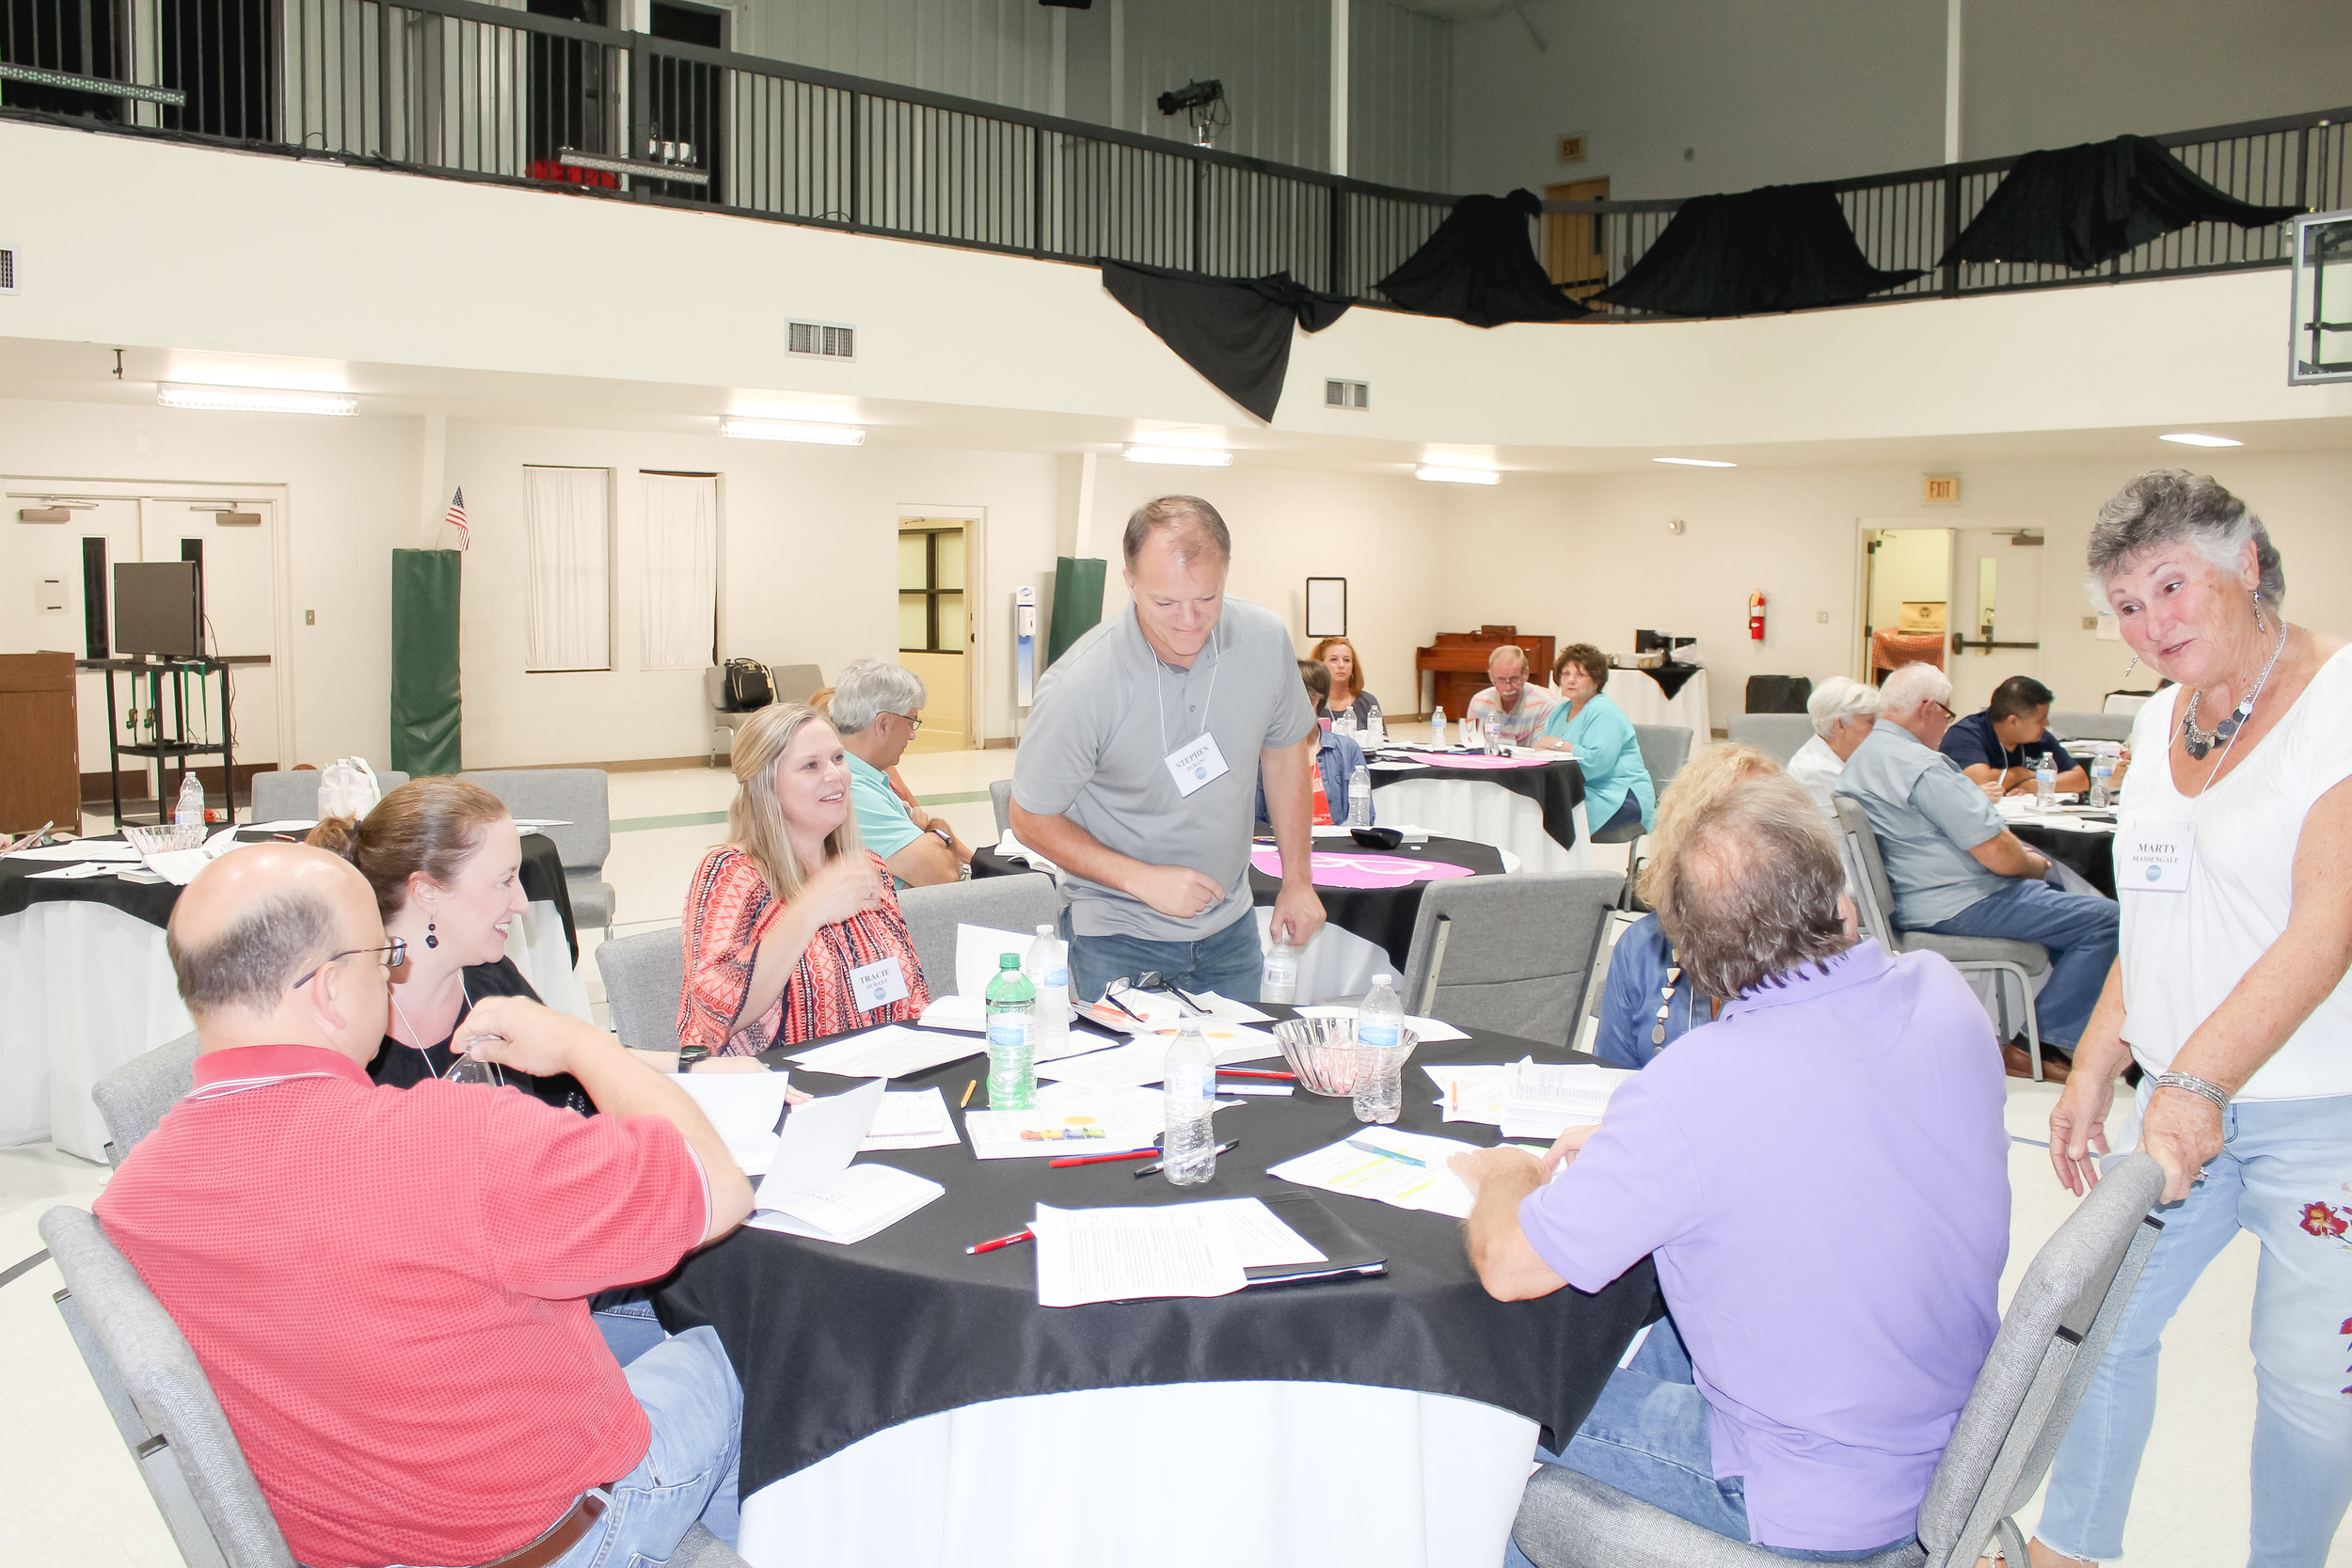 marriage_ministry_training_2018 (3 of 19).jpg